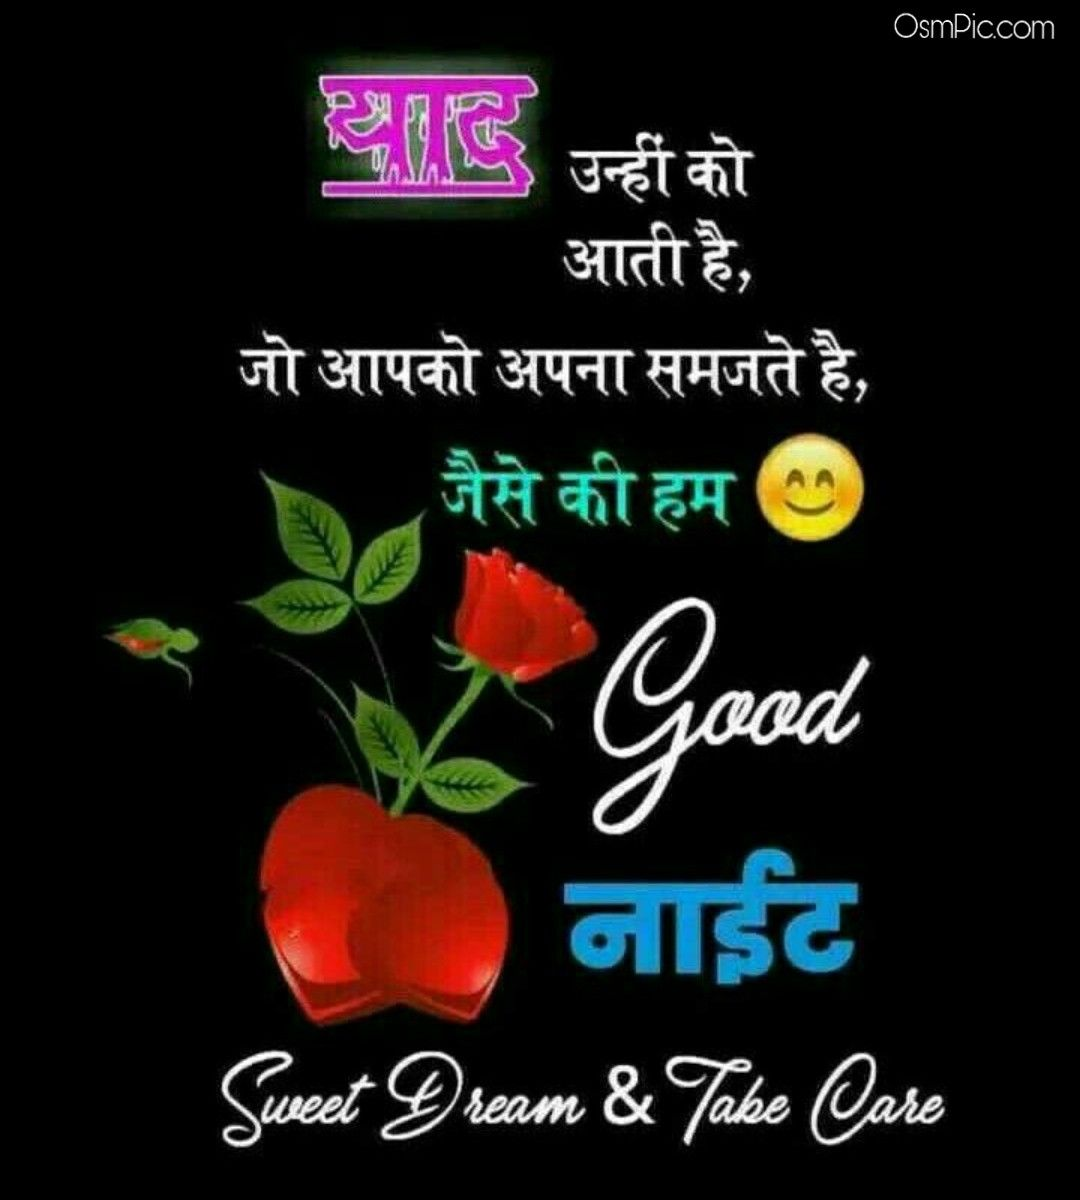 New Good Night Hindi Images For Whatsapp Good Night Images Shayari Good Night Hindi Good Night Quotes Good Night Image